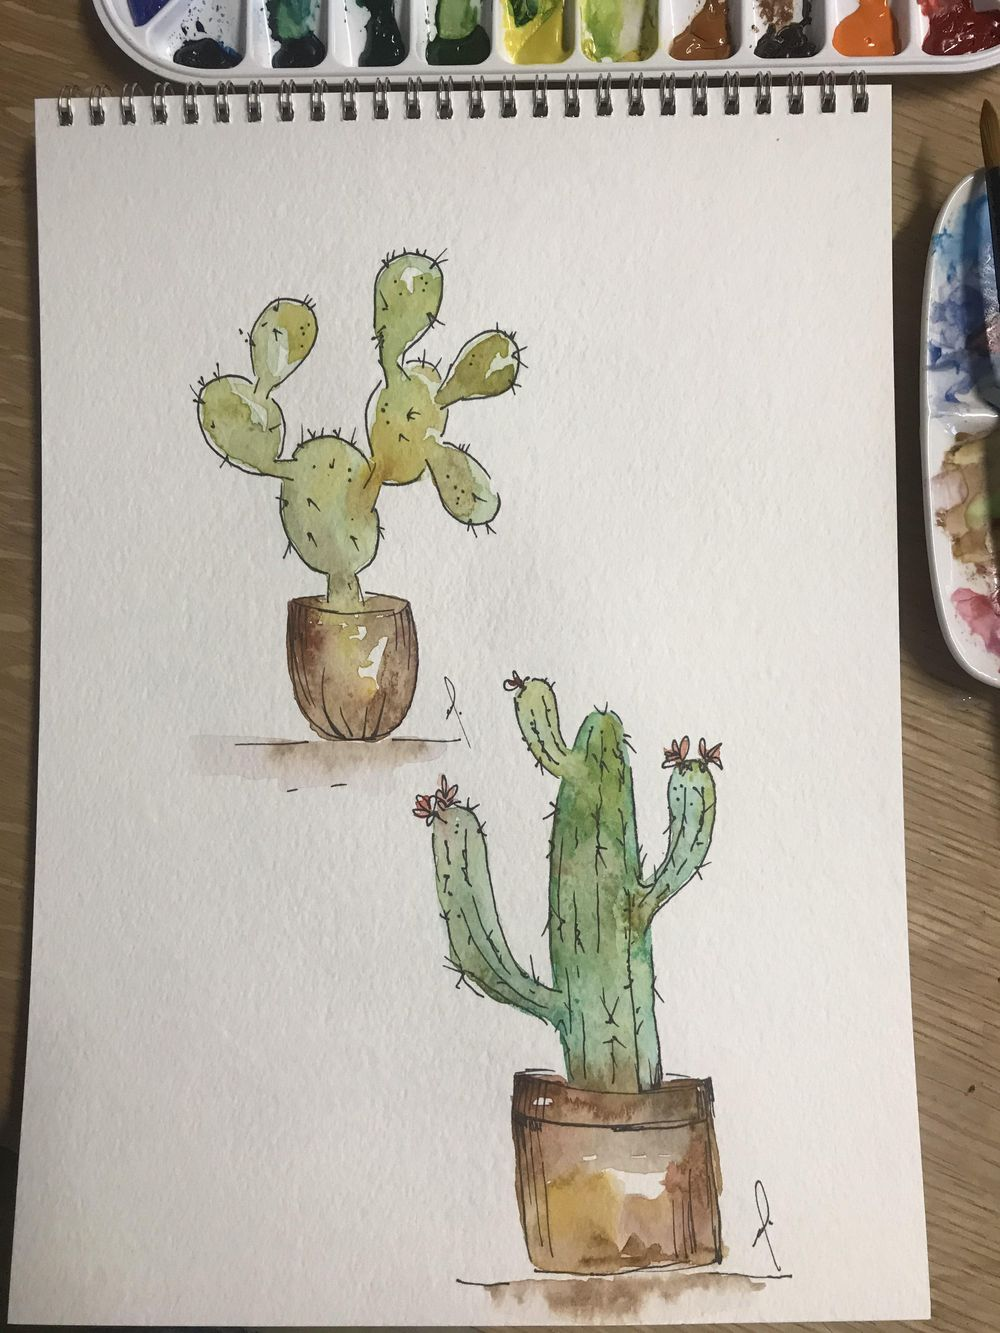 10 fun exercise in watercolor - image 5 - student project